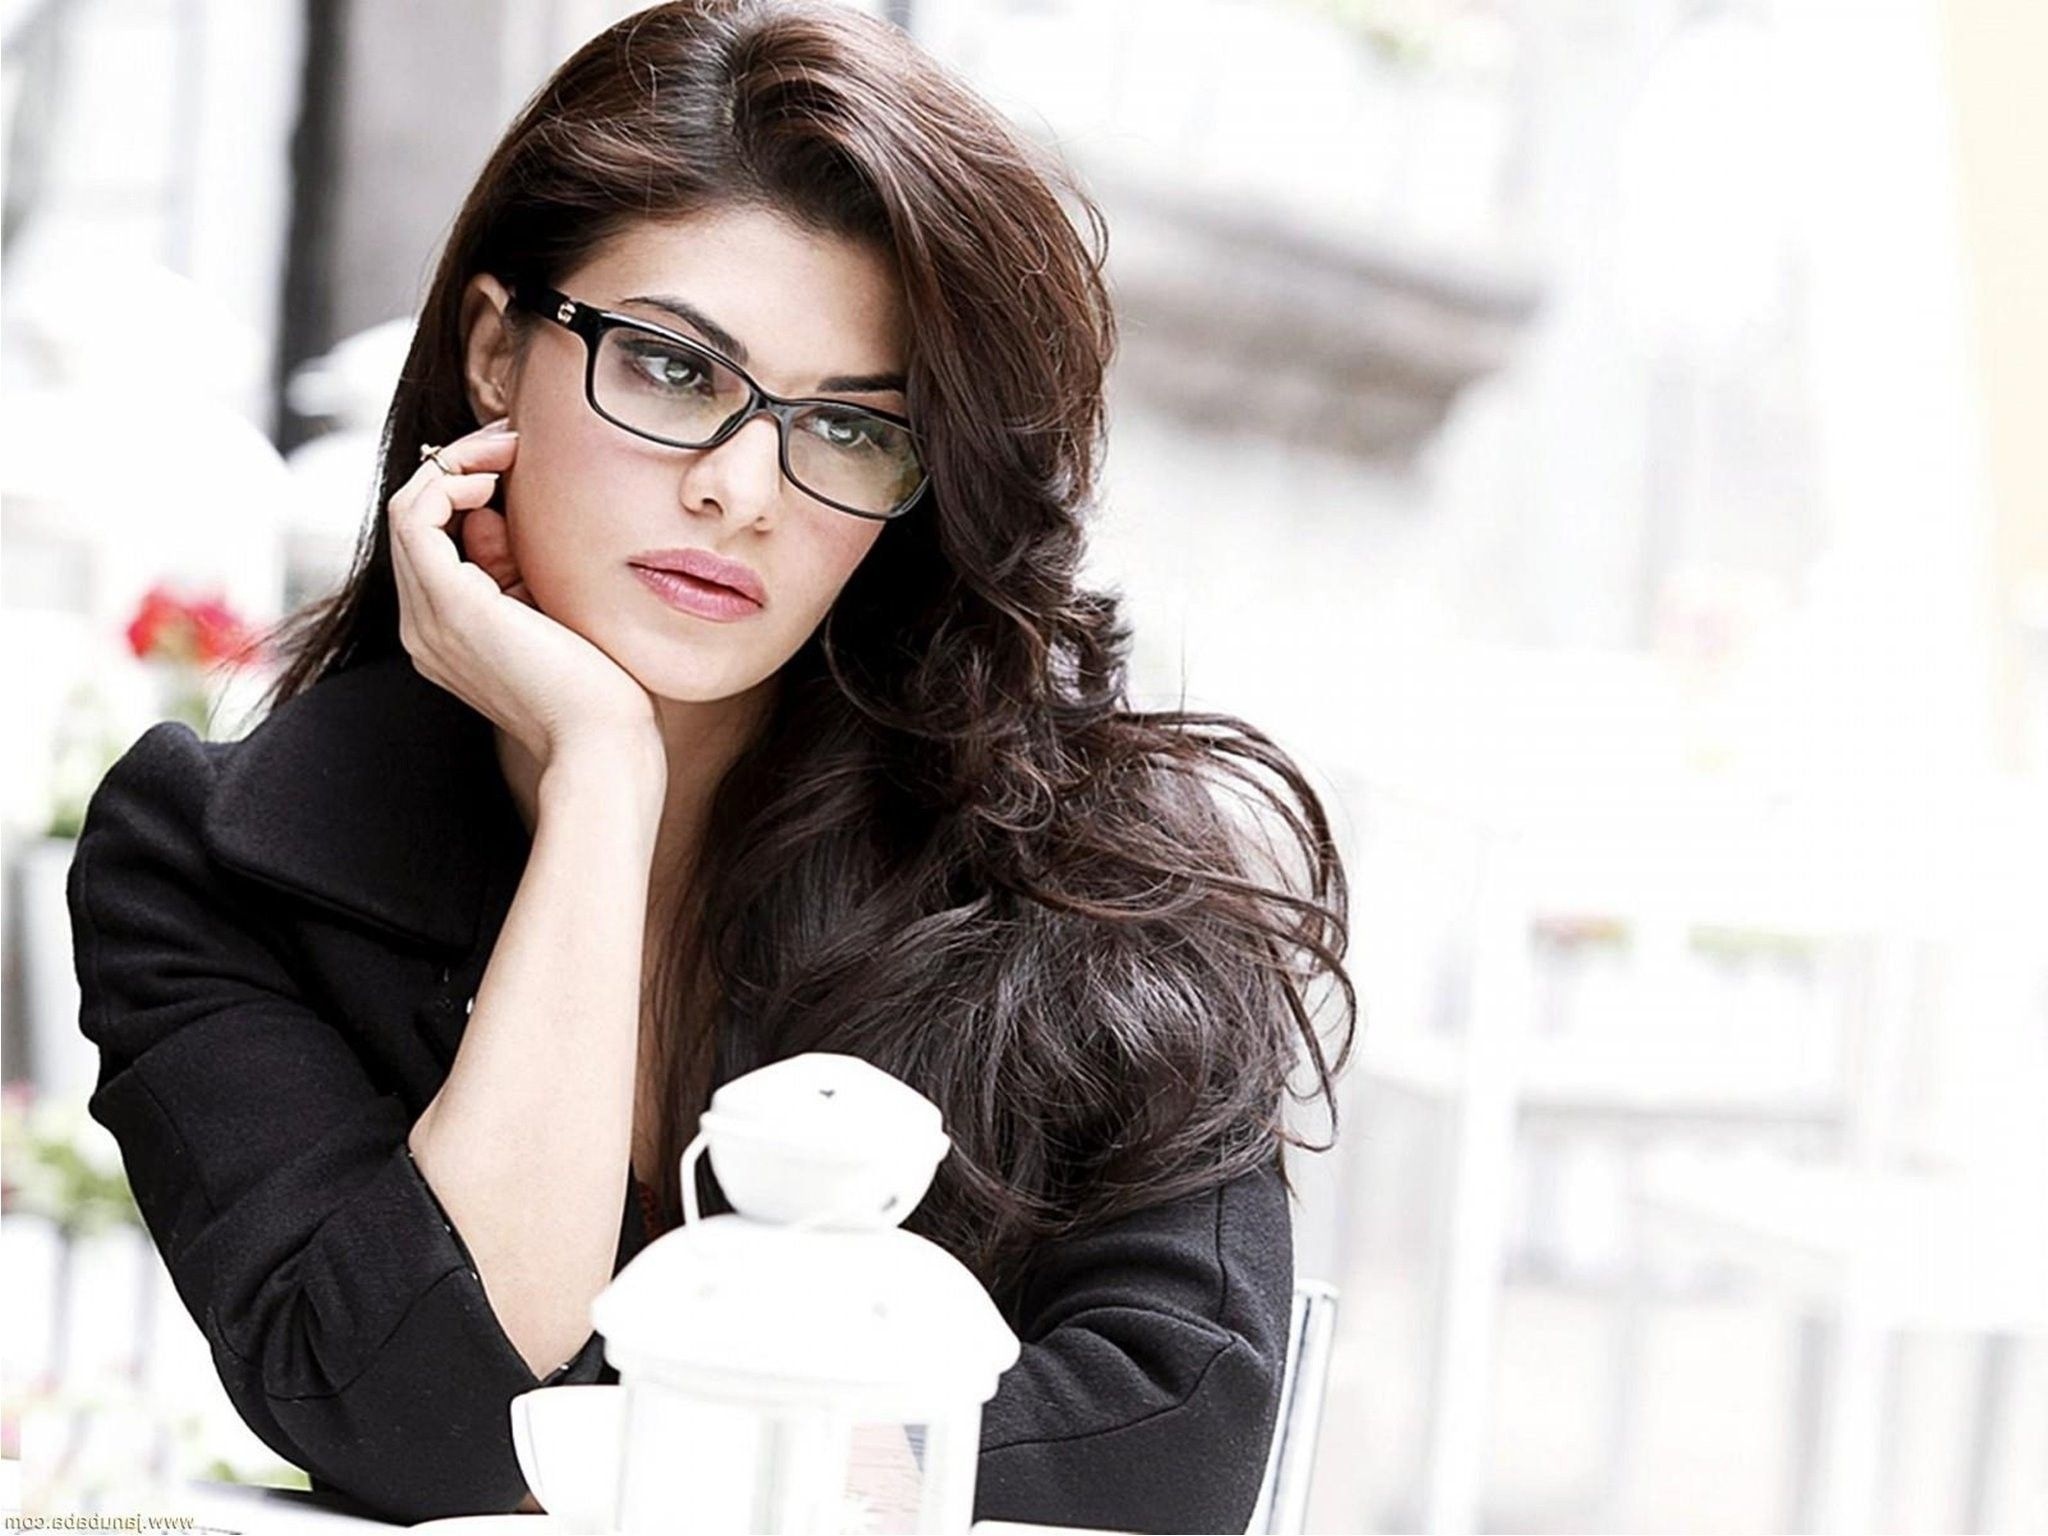 jacqueline fernandez hd images get free top quality jacqueline fernandez hd images for your desktop